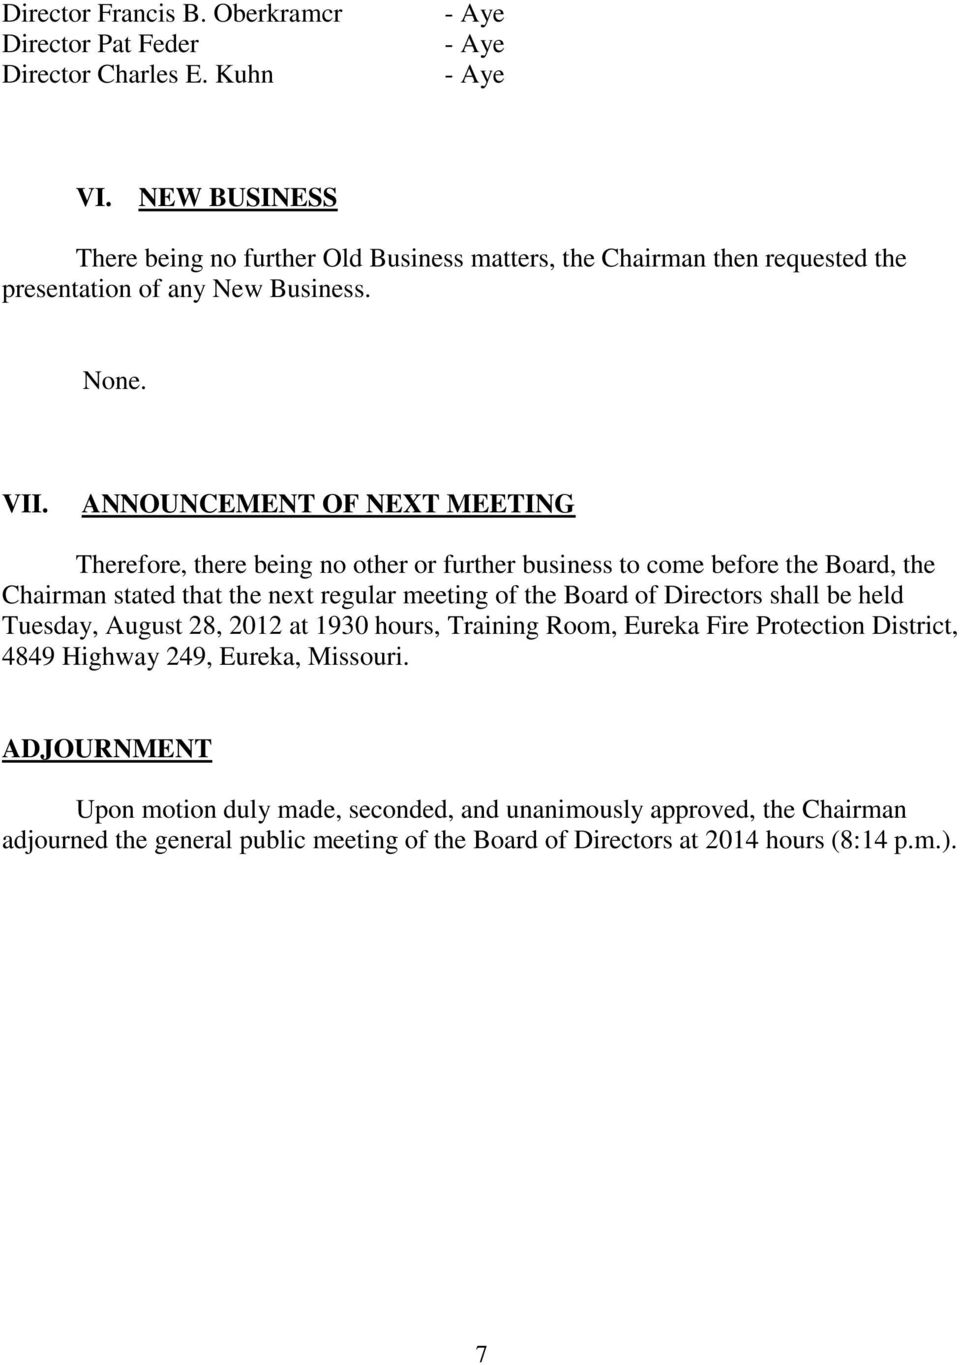 the Board of Directors shall be held Tuesday, August 28, 2012 at 1930 hours, Training Room, Eureka Fire Protection District, 4849 Highway 249, Eureka, Missouri.